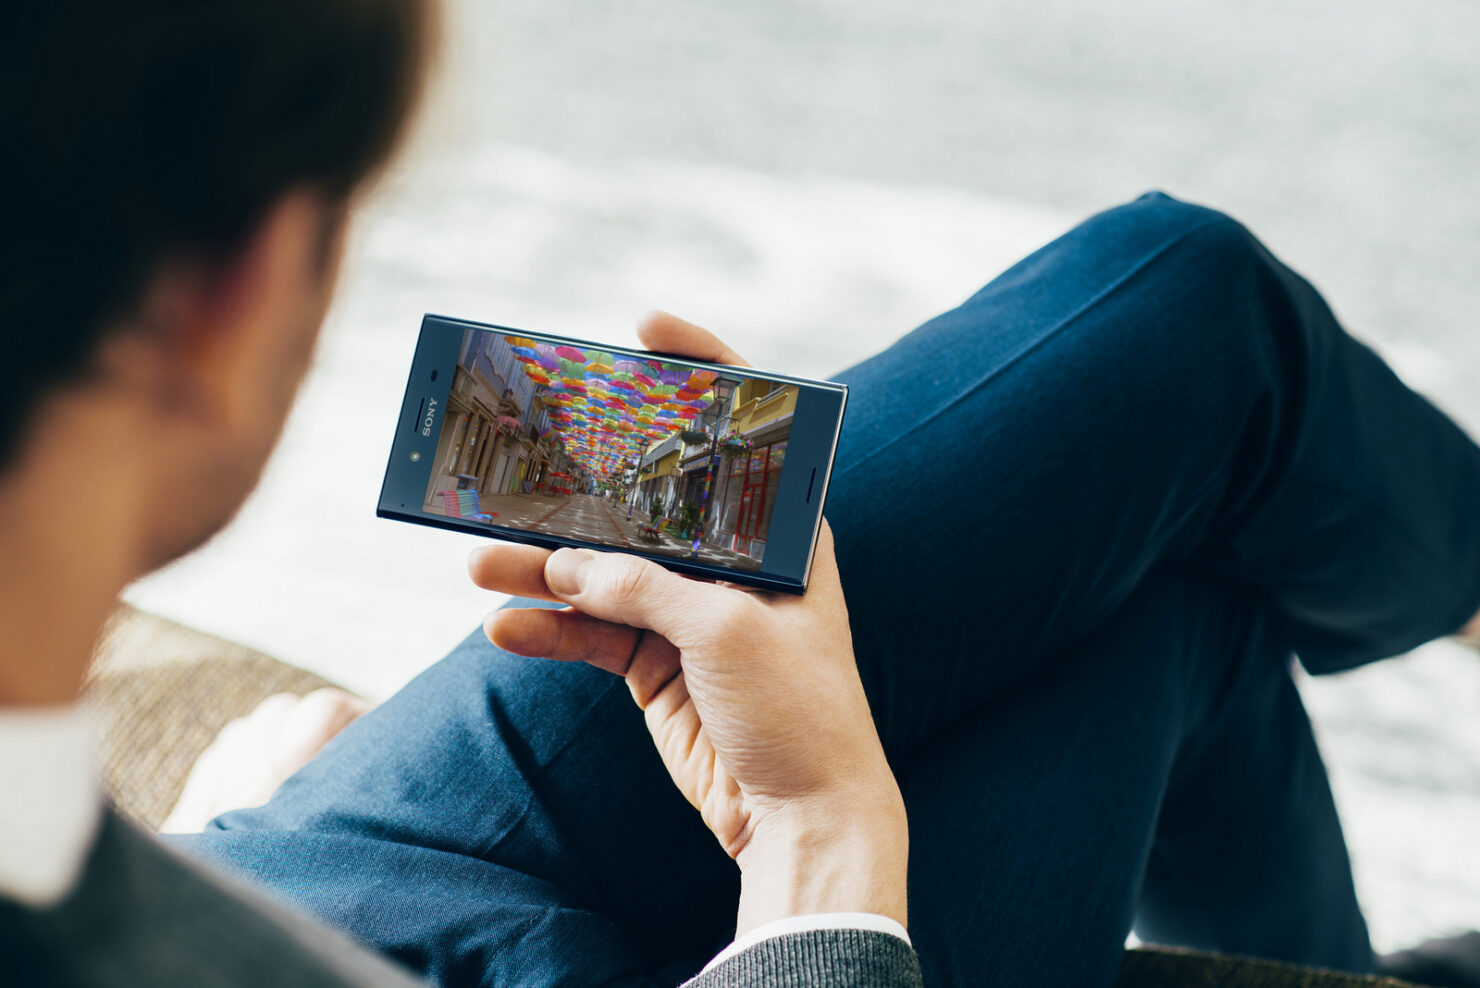 Sony Does Not Believe Bezel-Less Smartphones Are Functional - Are Not Intuitive From a User 'Point of View'